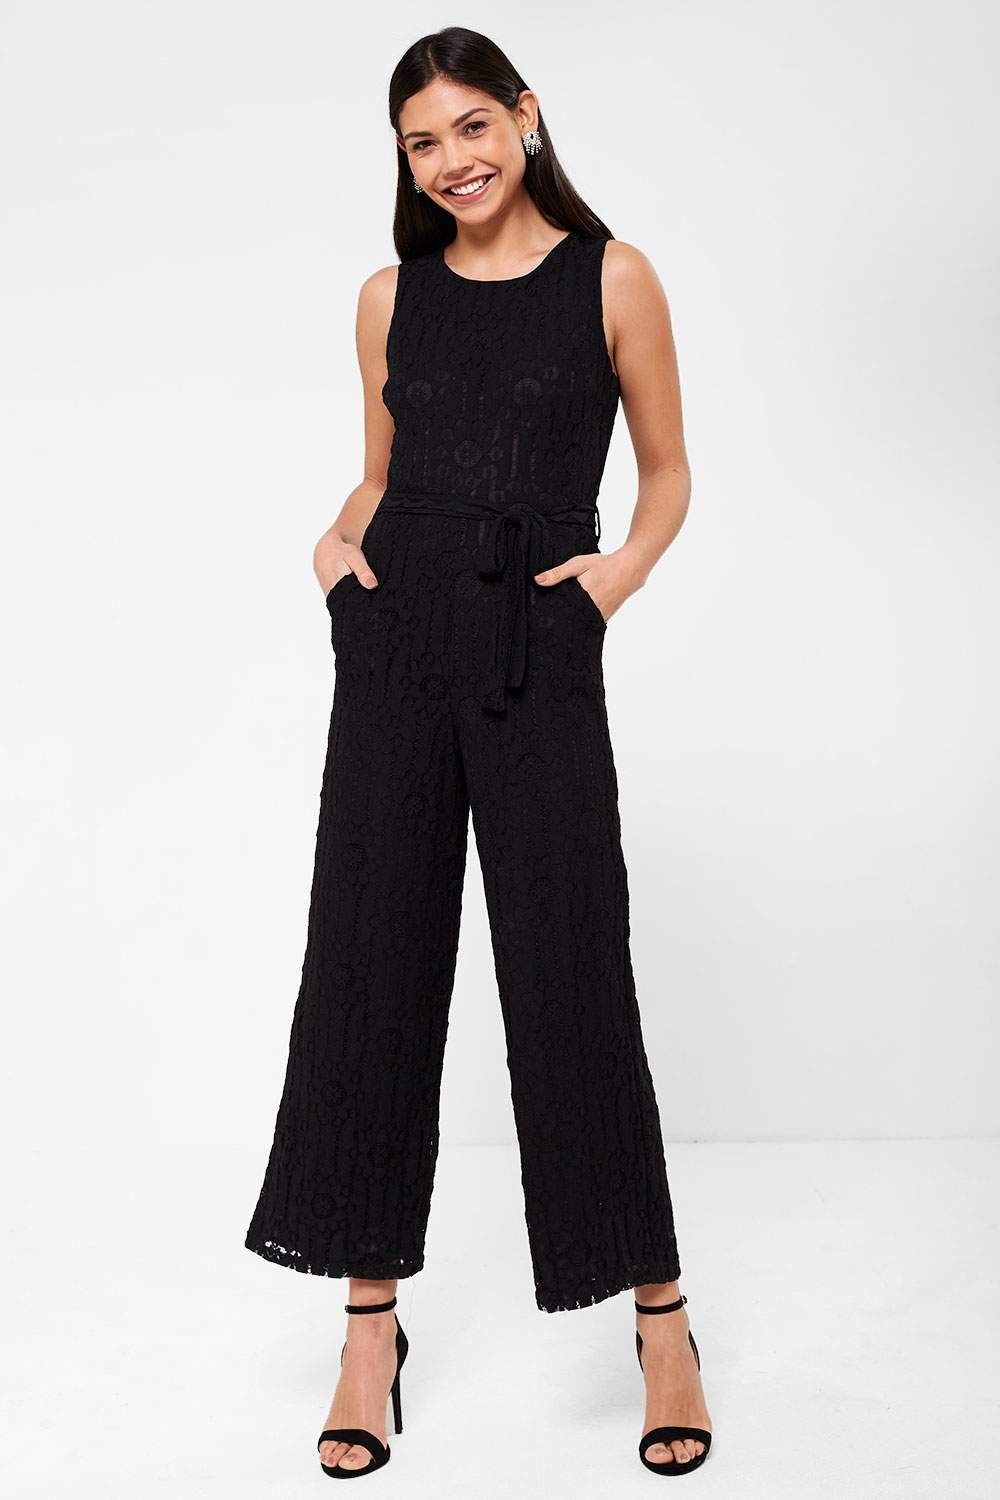 3b44fe77f89 Marc Angelo Donna Occasion Crochet Jumpsuit in Black